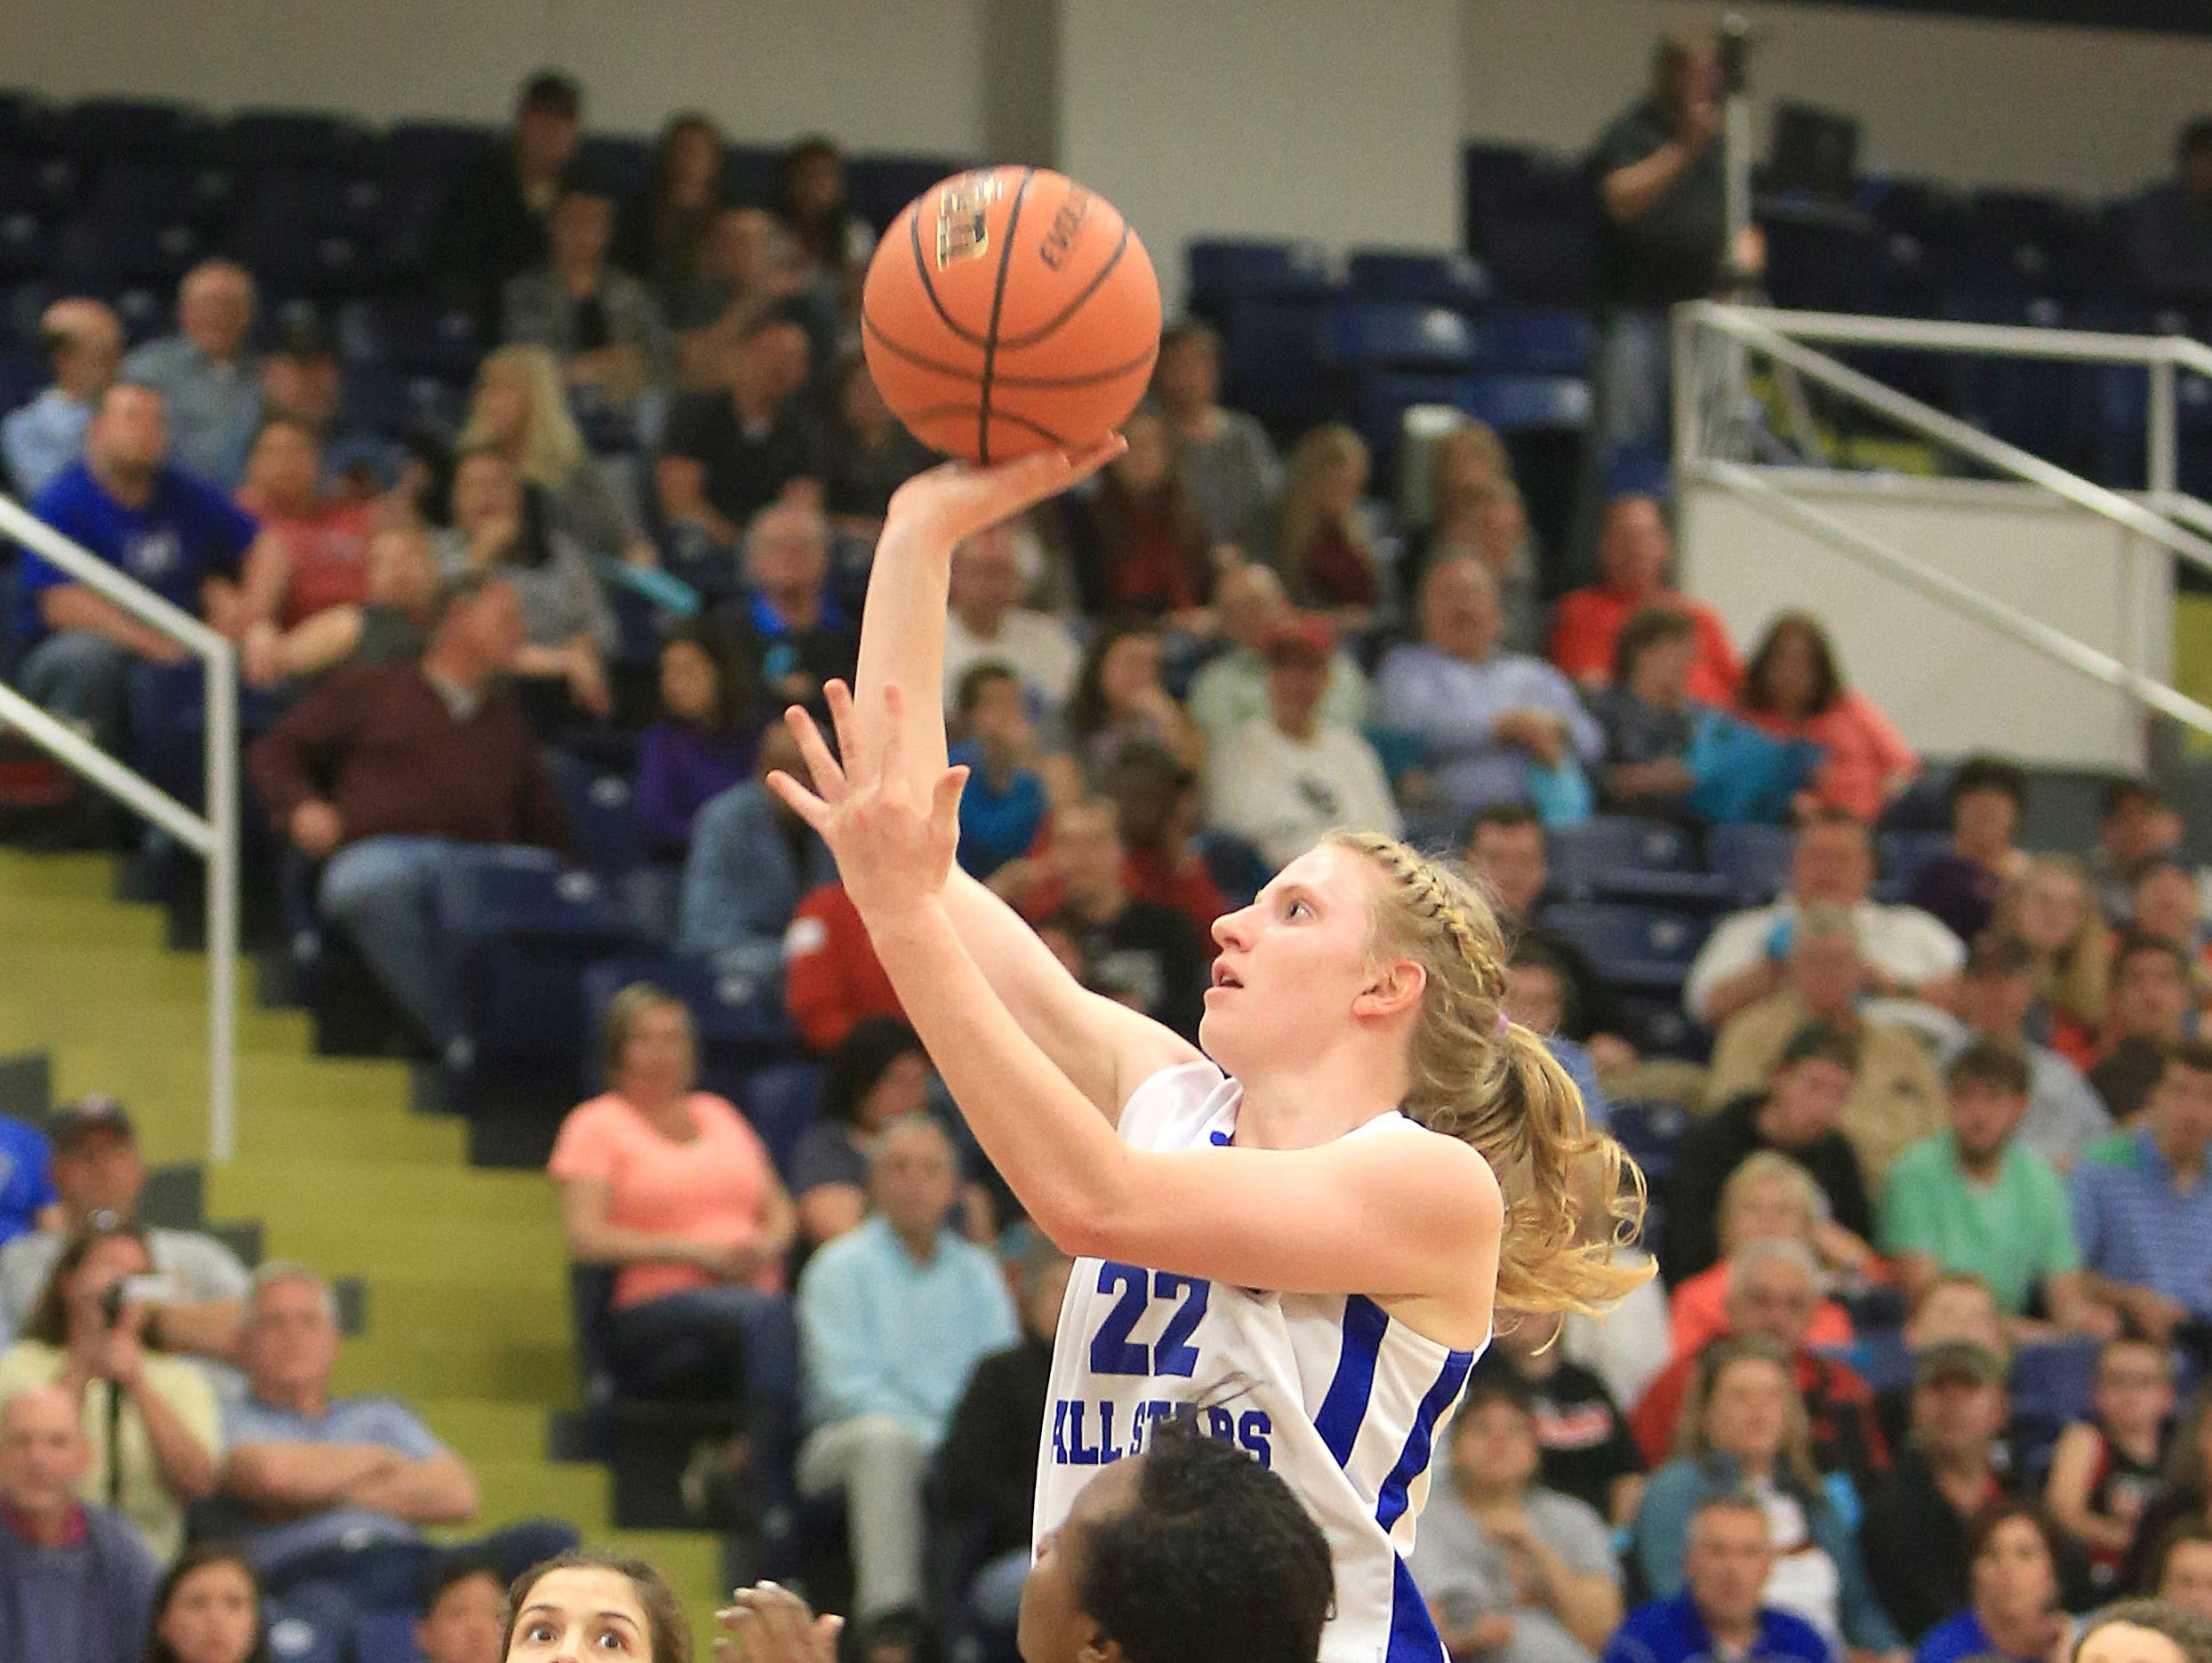 Recent Hayesville graduate Amanda Thompson will be part of Monday night's East-West All-Star basketball games in Greensboro.